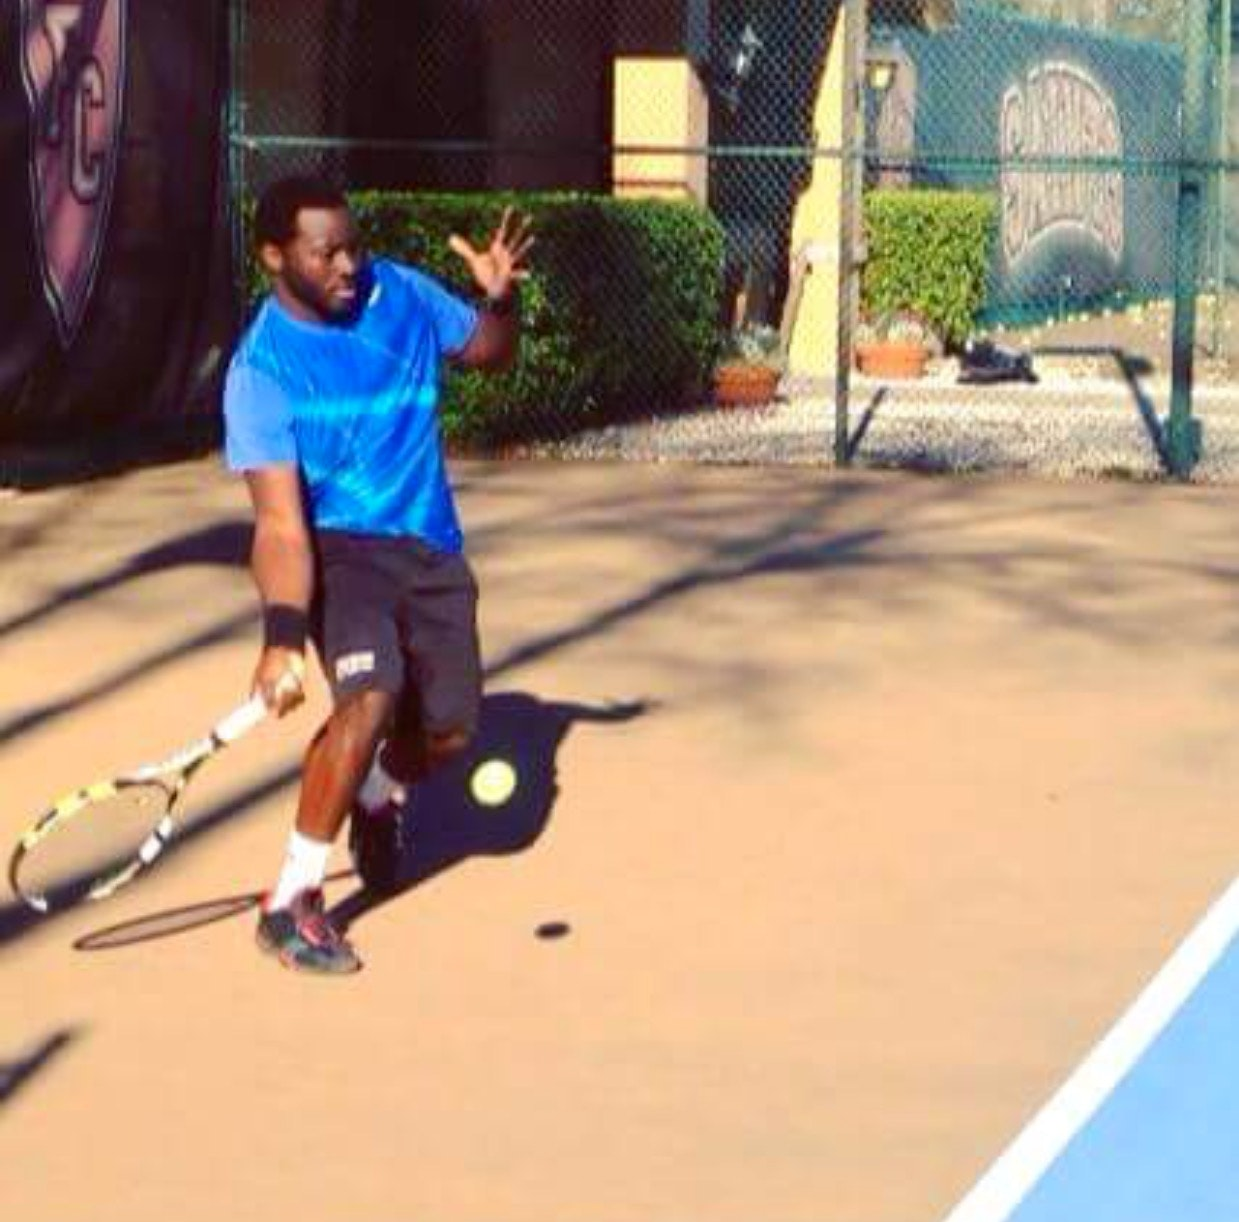 Dirnaj S. teaches tennis lessons in Tampa, FL